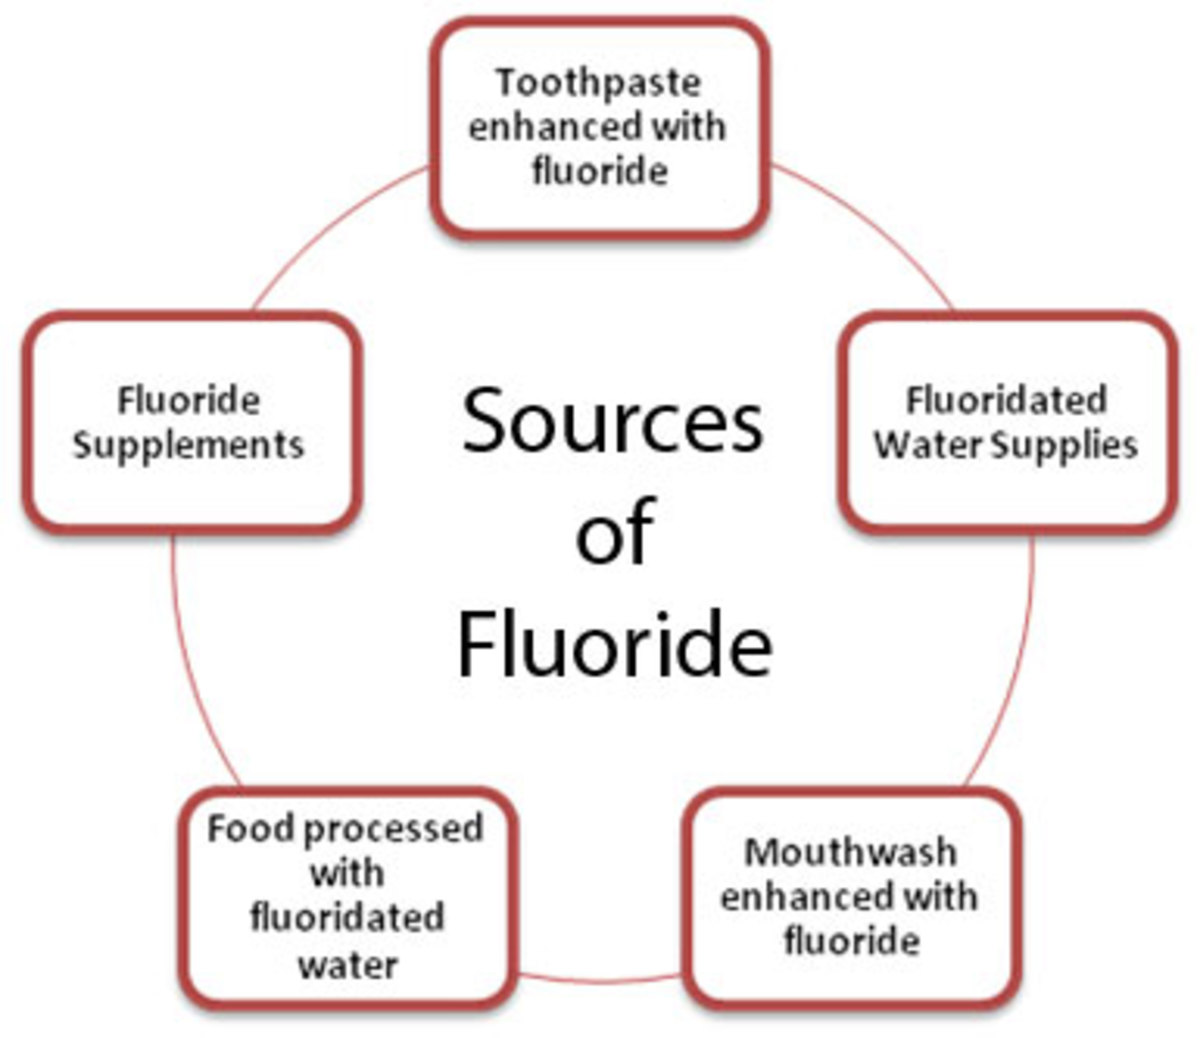 a study of fluorides This dissertation has been microfilmed exactly as received q 6—645 2 morales, raul, 1935- a study on the precipitation of calcium as calcium fluoride.